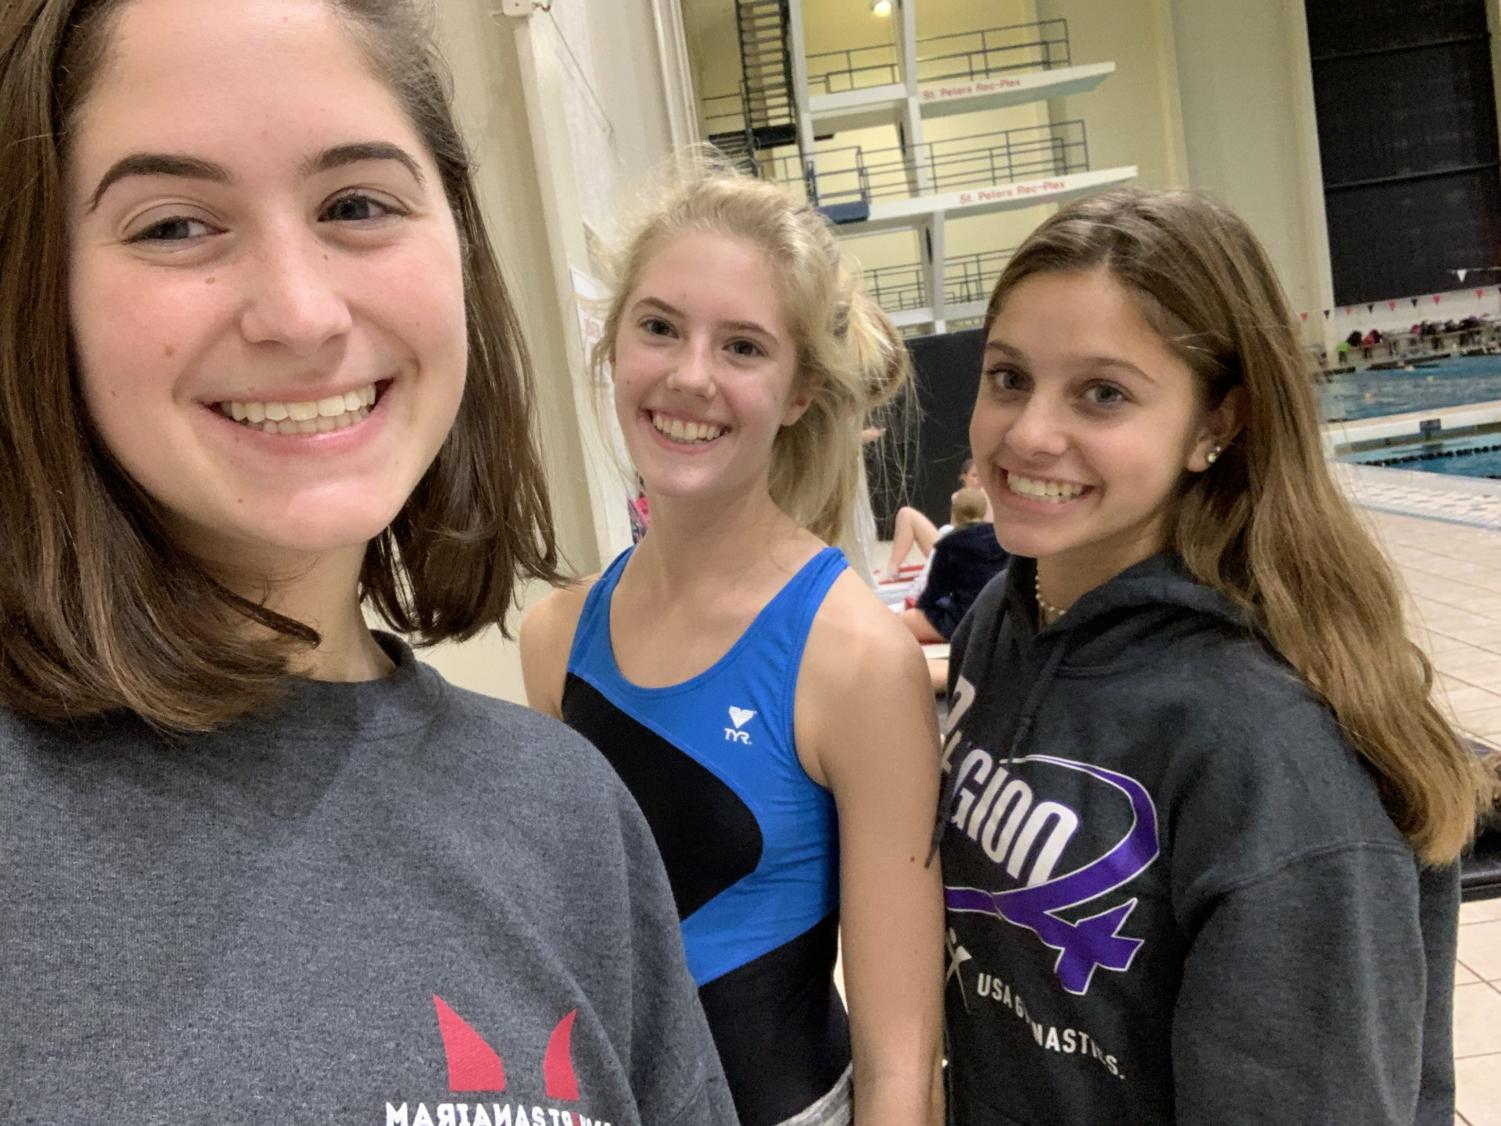 Maggie Merz, Carly Torbit and Abby Kuhn practice after school in preparation for their meets later in the season.